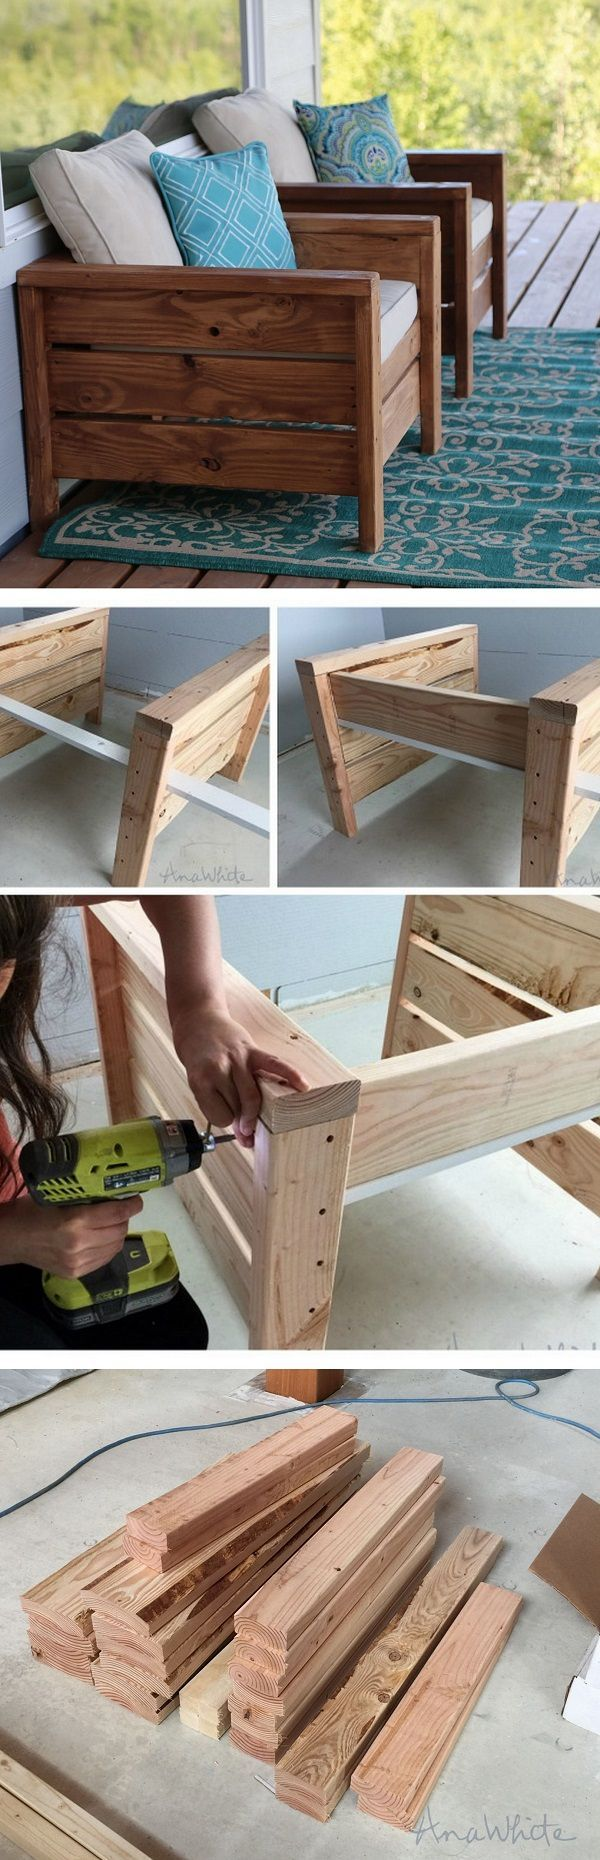 easy diy furniture projects. 15 Easy DIY Chairs For A Home Decor Friendly Project   Modern Chairs, Tutorials And Diy Furniture Projects T